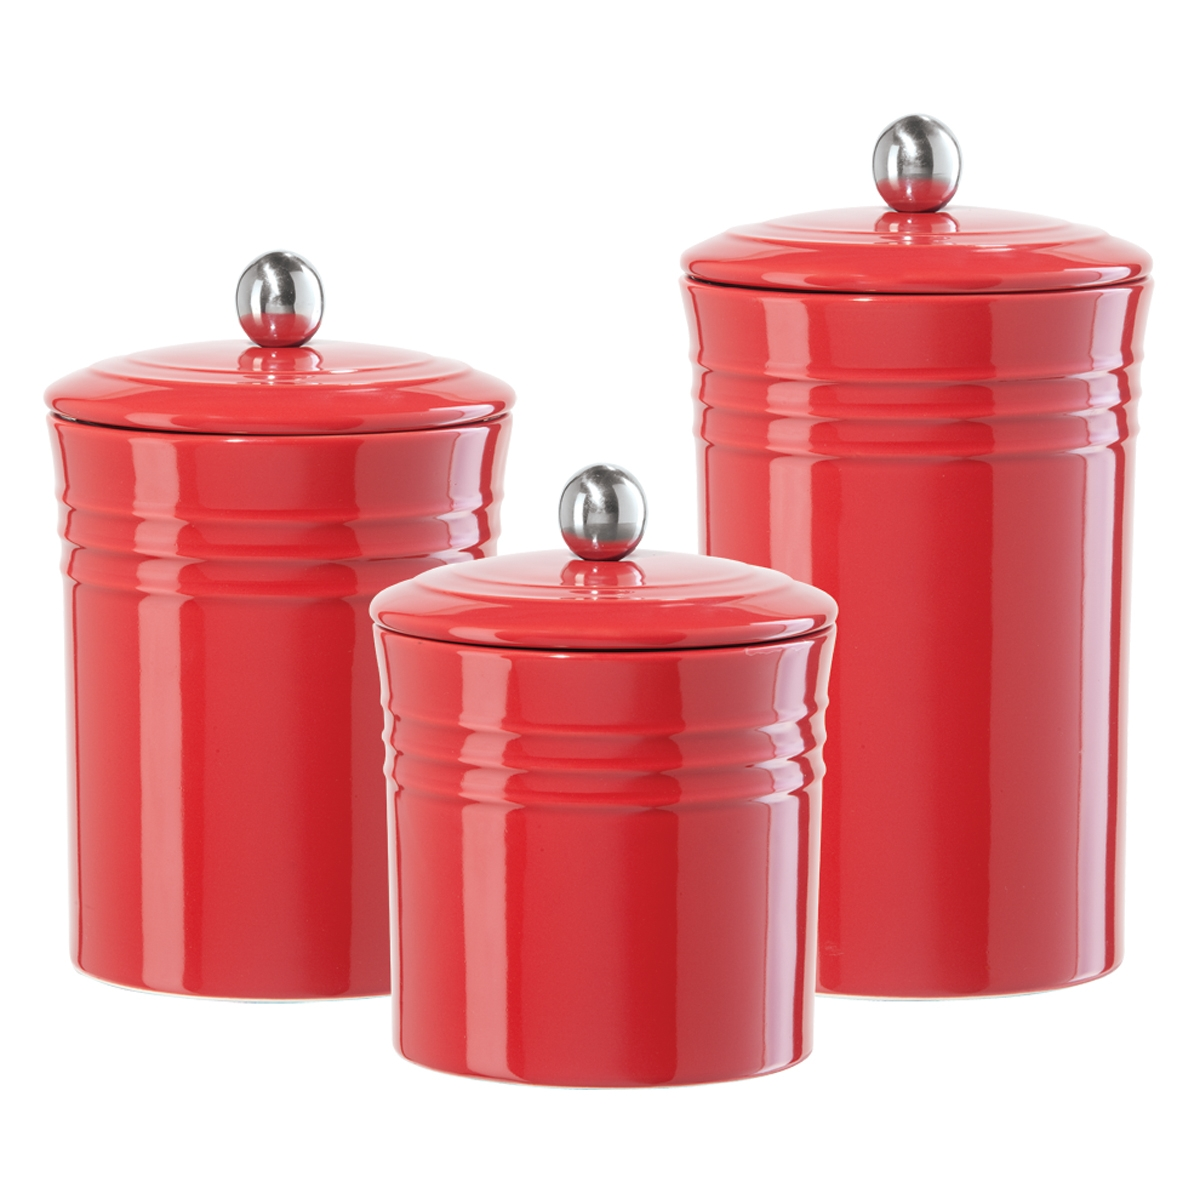 kitchen storage canisters kitchen storage canisters kitchen ideas 13810